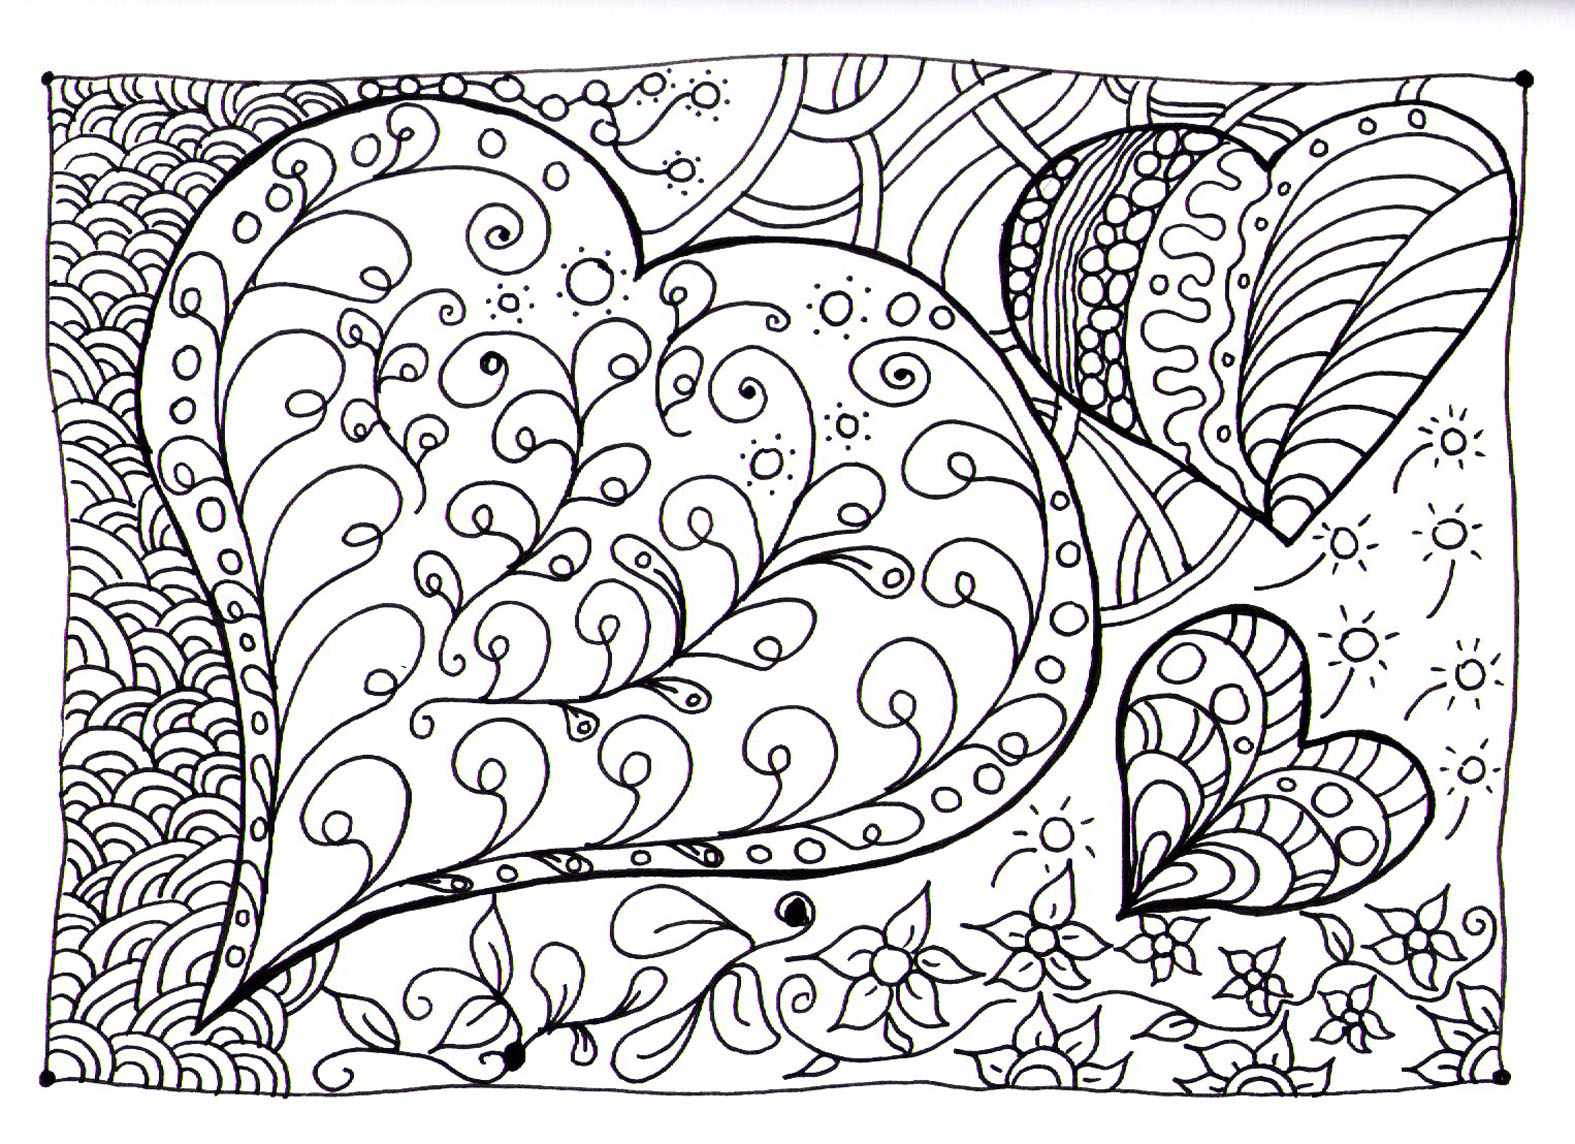 Coloring Pages ~ Coloring Pages Doodle Free Printable Google Page - Free Printable Doodle Patterns